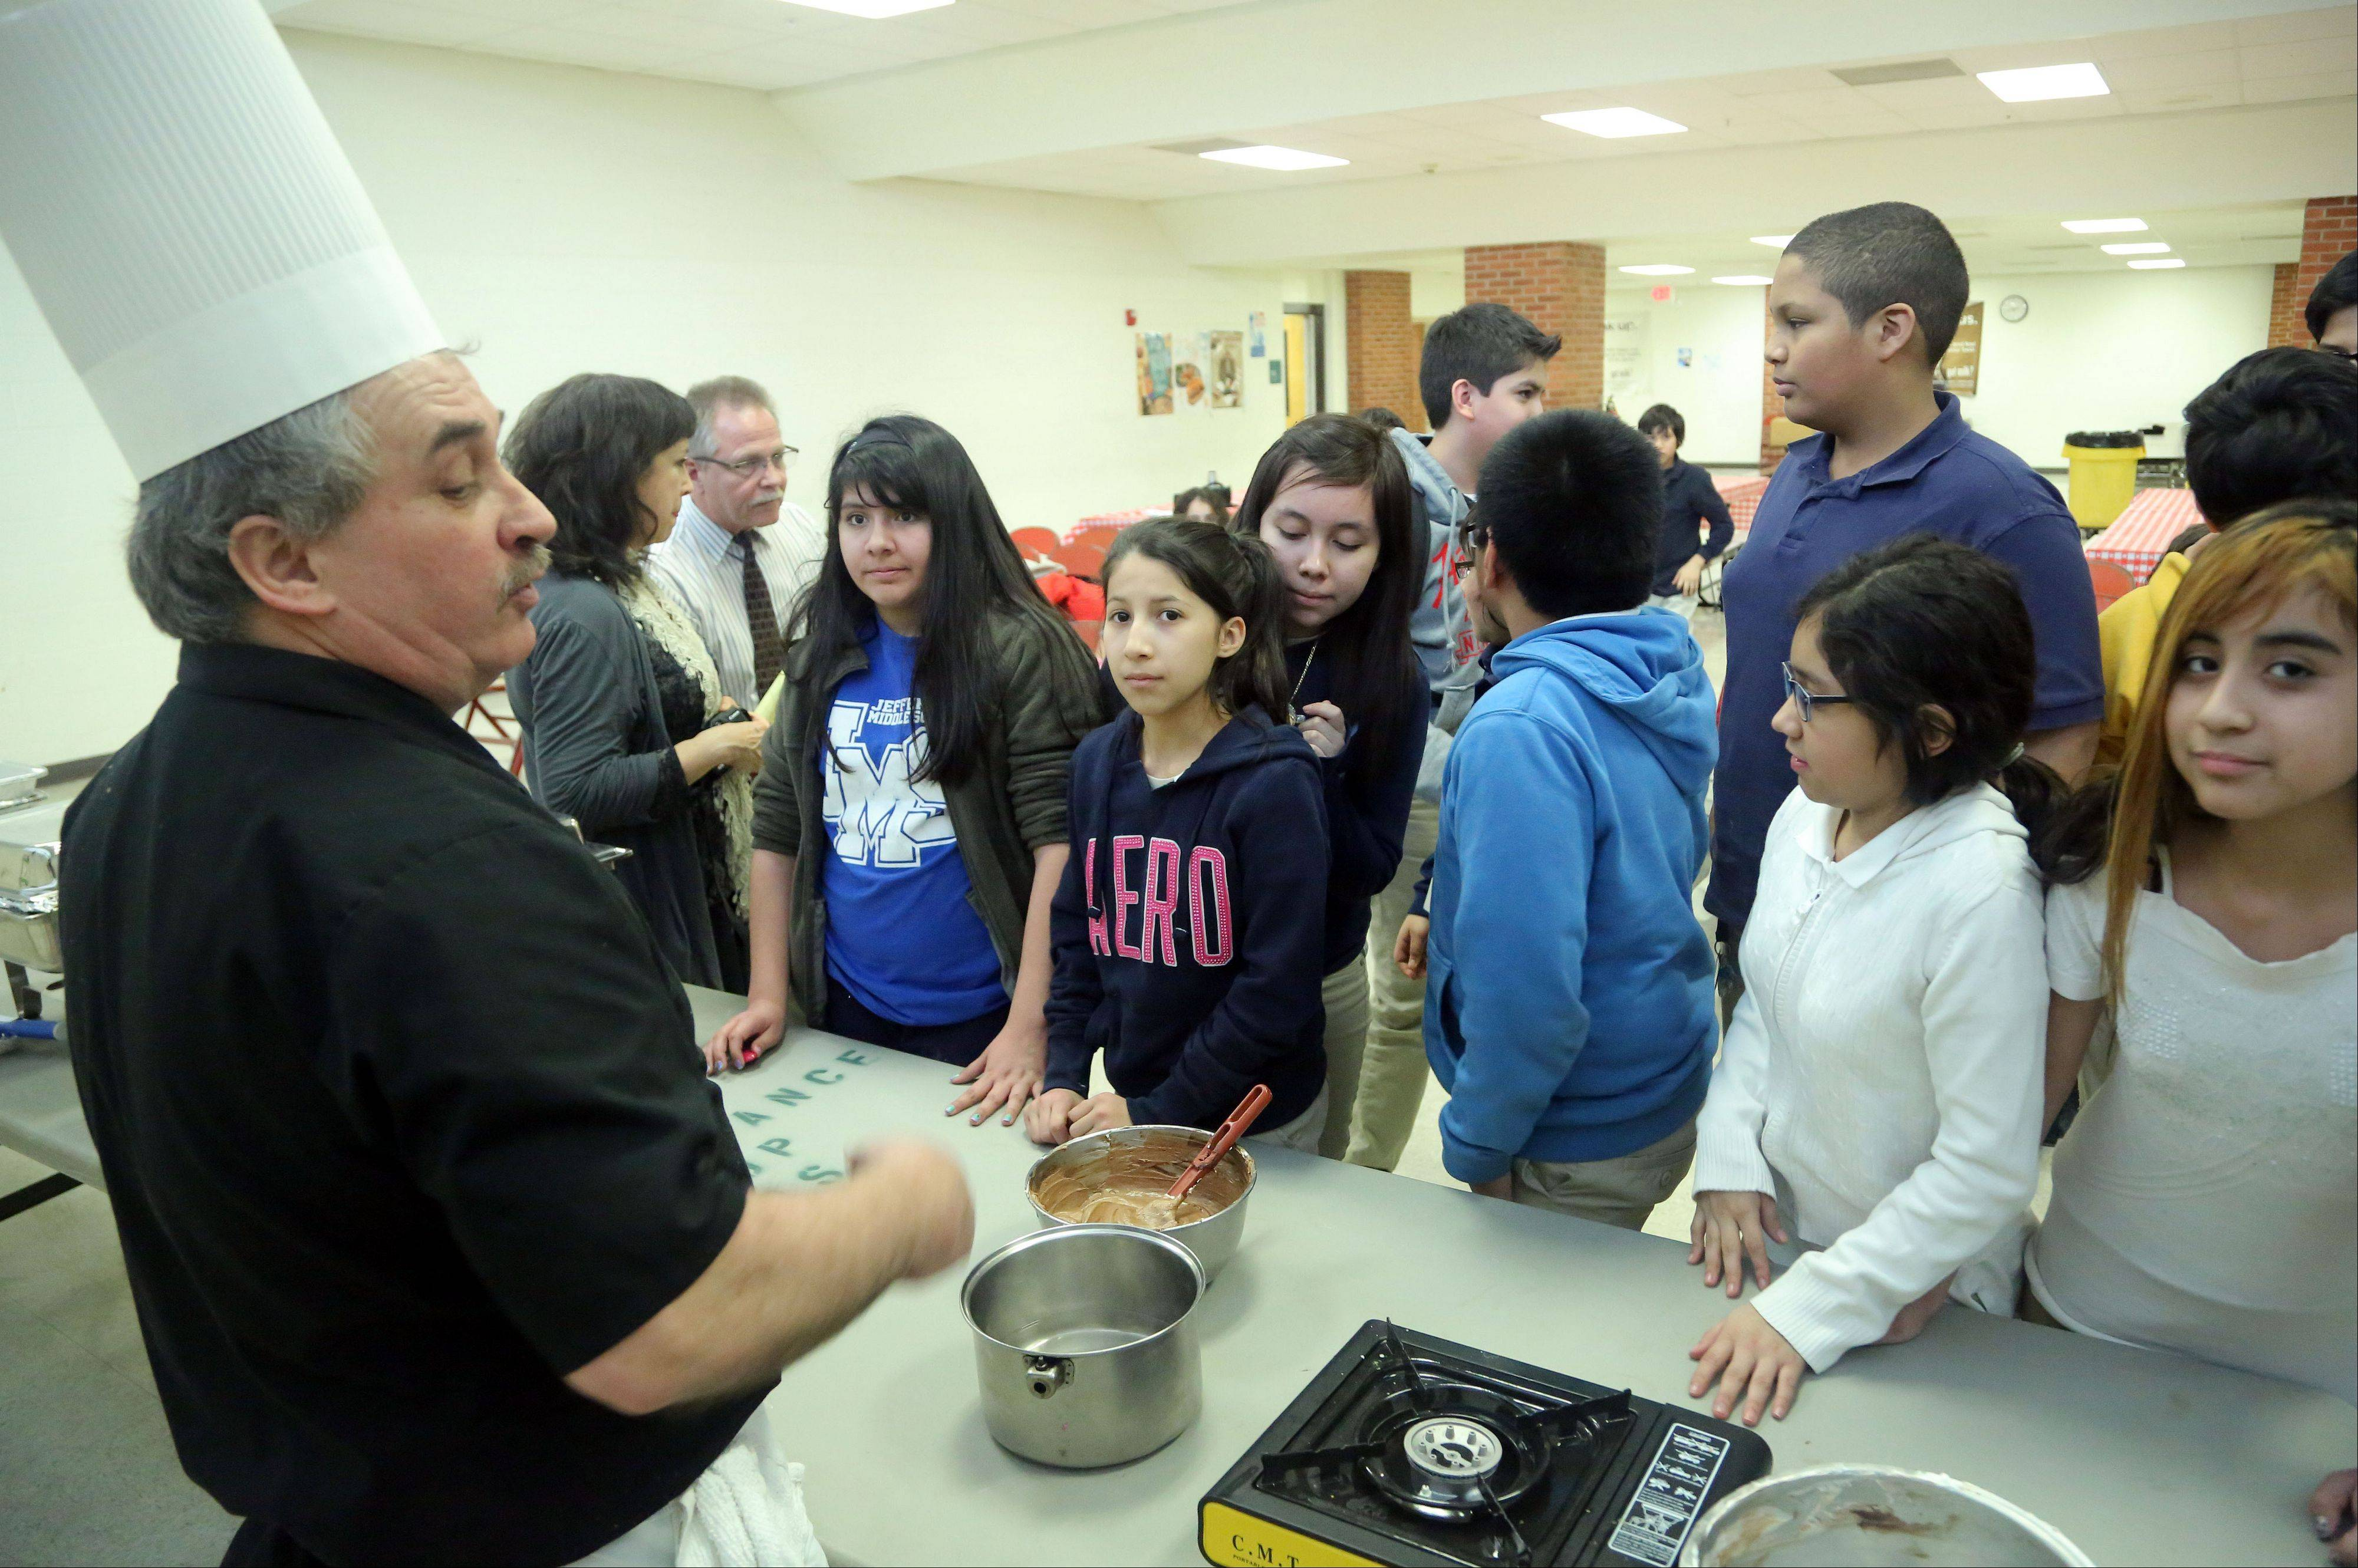 Claude Bouteille, left, owner/chef of Taste of Paris Restaurant in Mundelein, teaches kids how to make chocolate mousse Thursday during a demonstration for sixth-, seventh- and eight-graders in Maureen Fischer Rivkin's French class at Thomas Jefferson School in Waukegan.